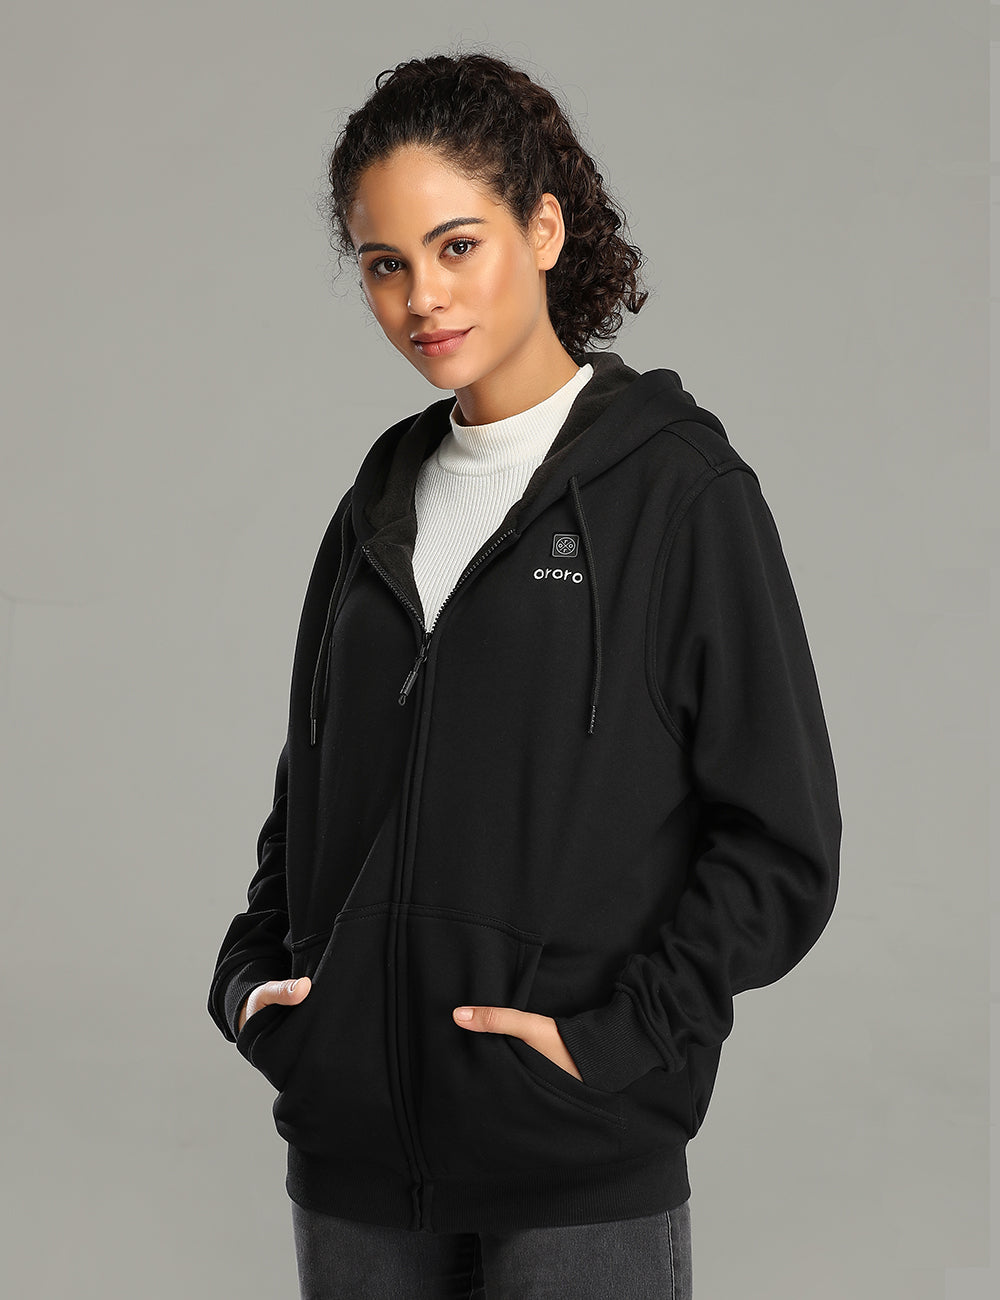 ORORO Women Heated Fleece Hoodie - Black